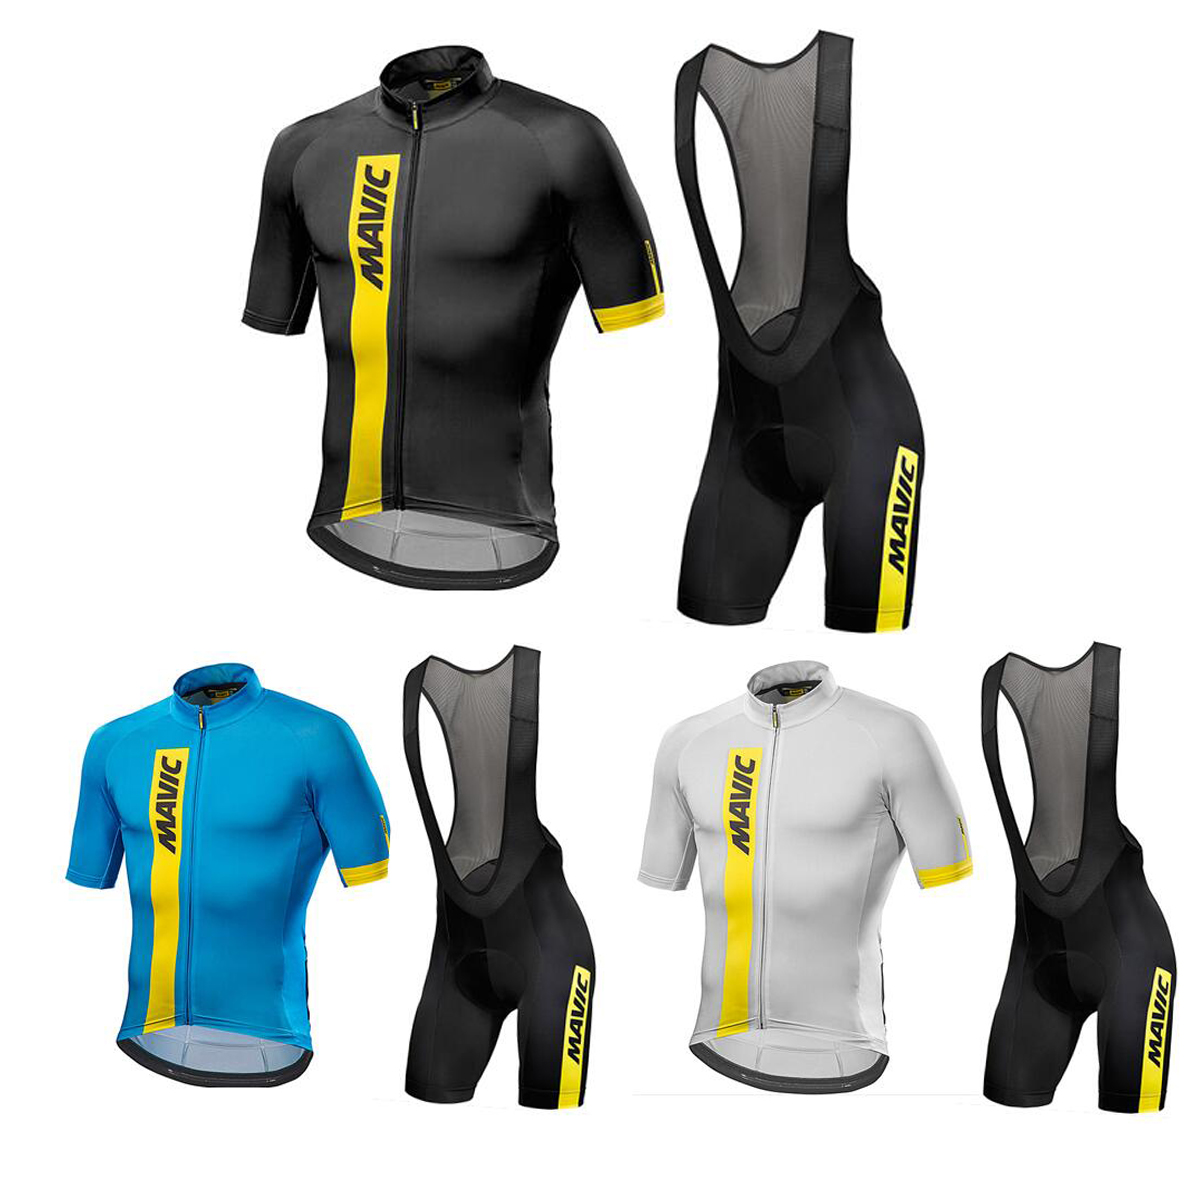 New Brand Team Bicycle Bike jersey MAVIC Anniversary Special Edition 2018 Summer Men Cycling Jerseys Clothing Set cycling clothing rushed mtb mavic 2017 bike jerseys men for graffiti cycling polyester breathable bicycle new multicolor s 6xl